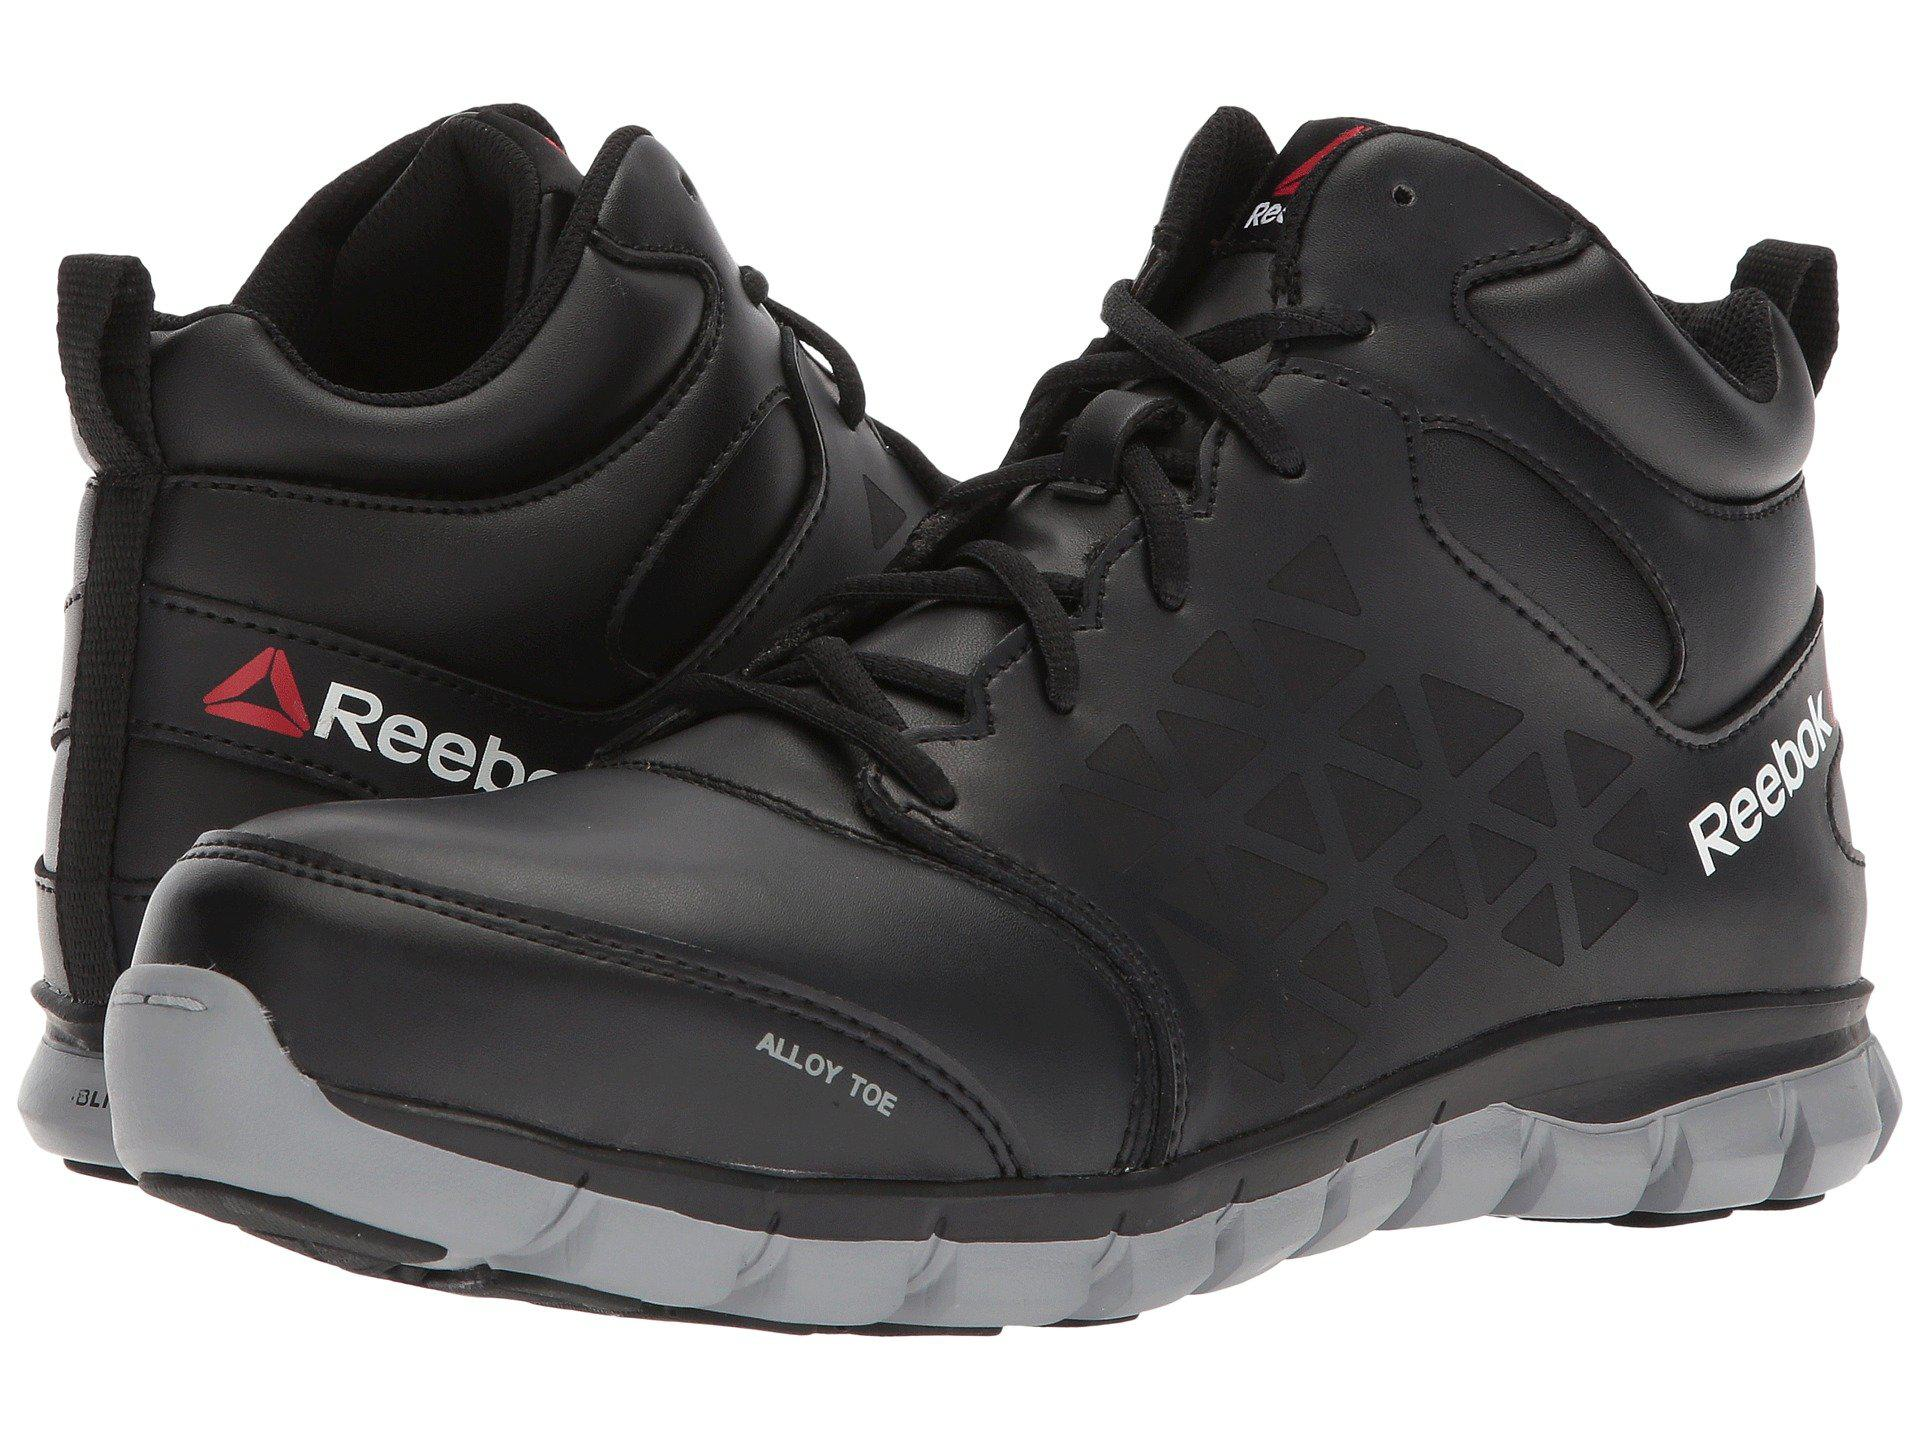 91783a9ebc85 Reebok - Sublite Cushion Work Mid Eh (black) Men s Work Boots for Men -.  View fullscreen